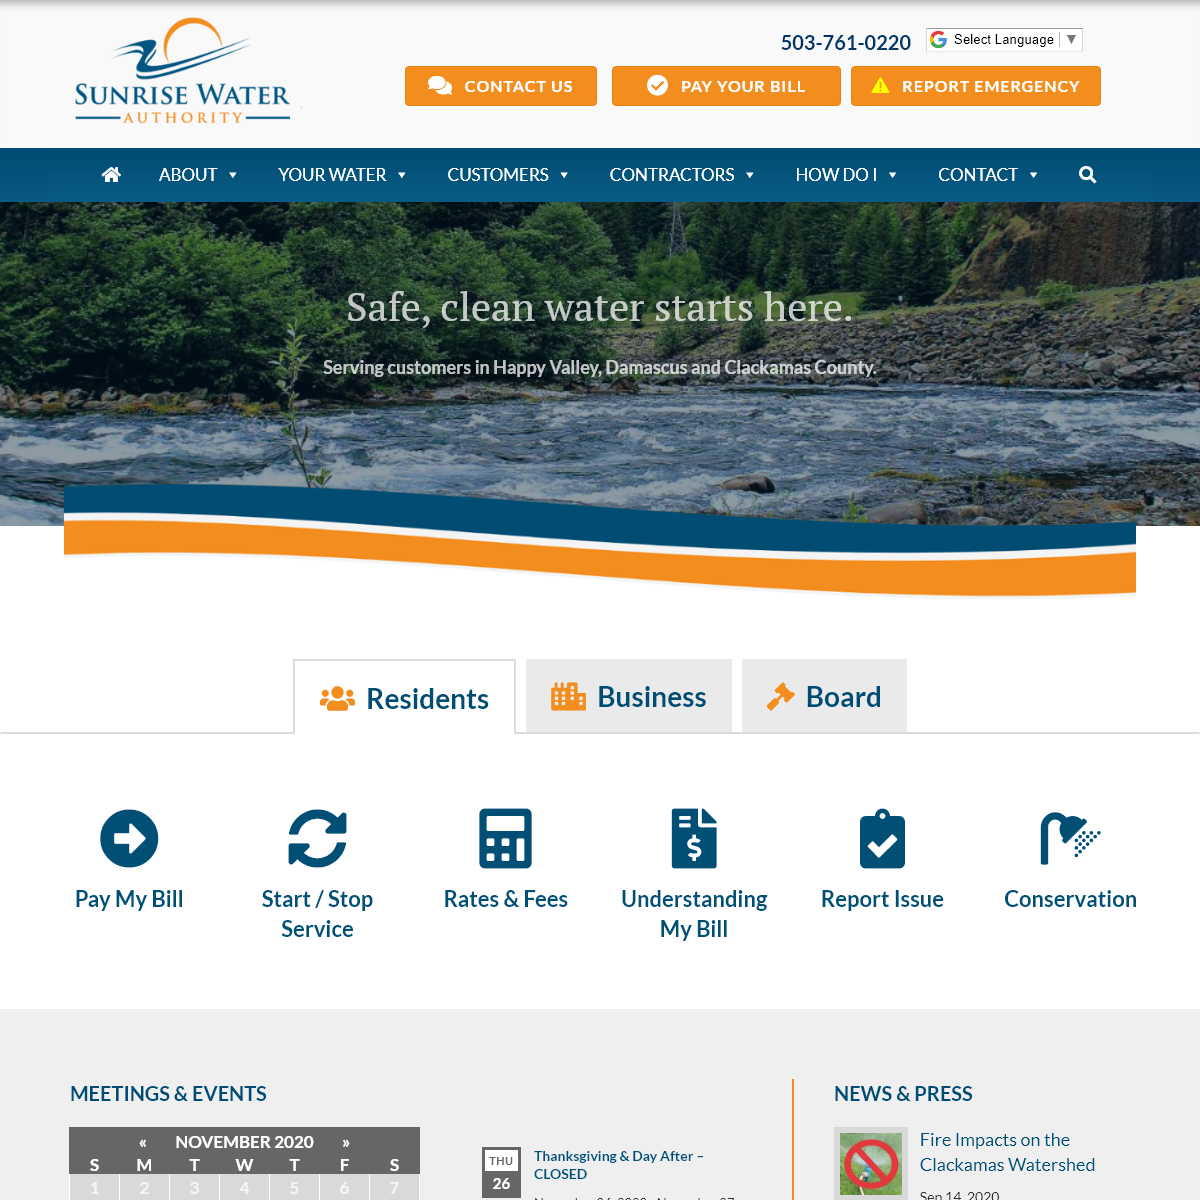 Sunrise Water Authority - Water service to Happy Valley, Damascus, Clackamas County Oregon